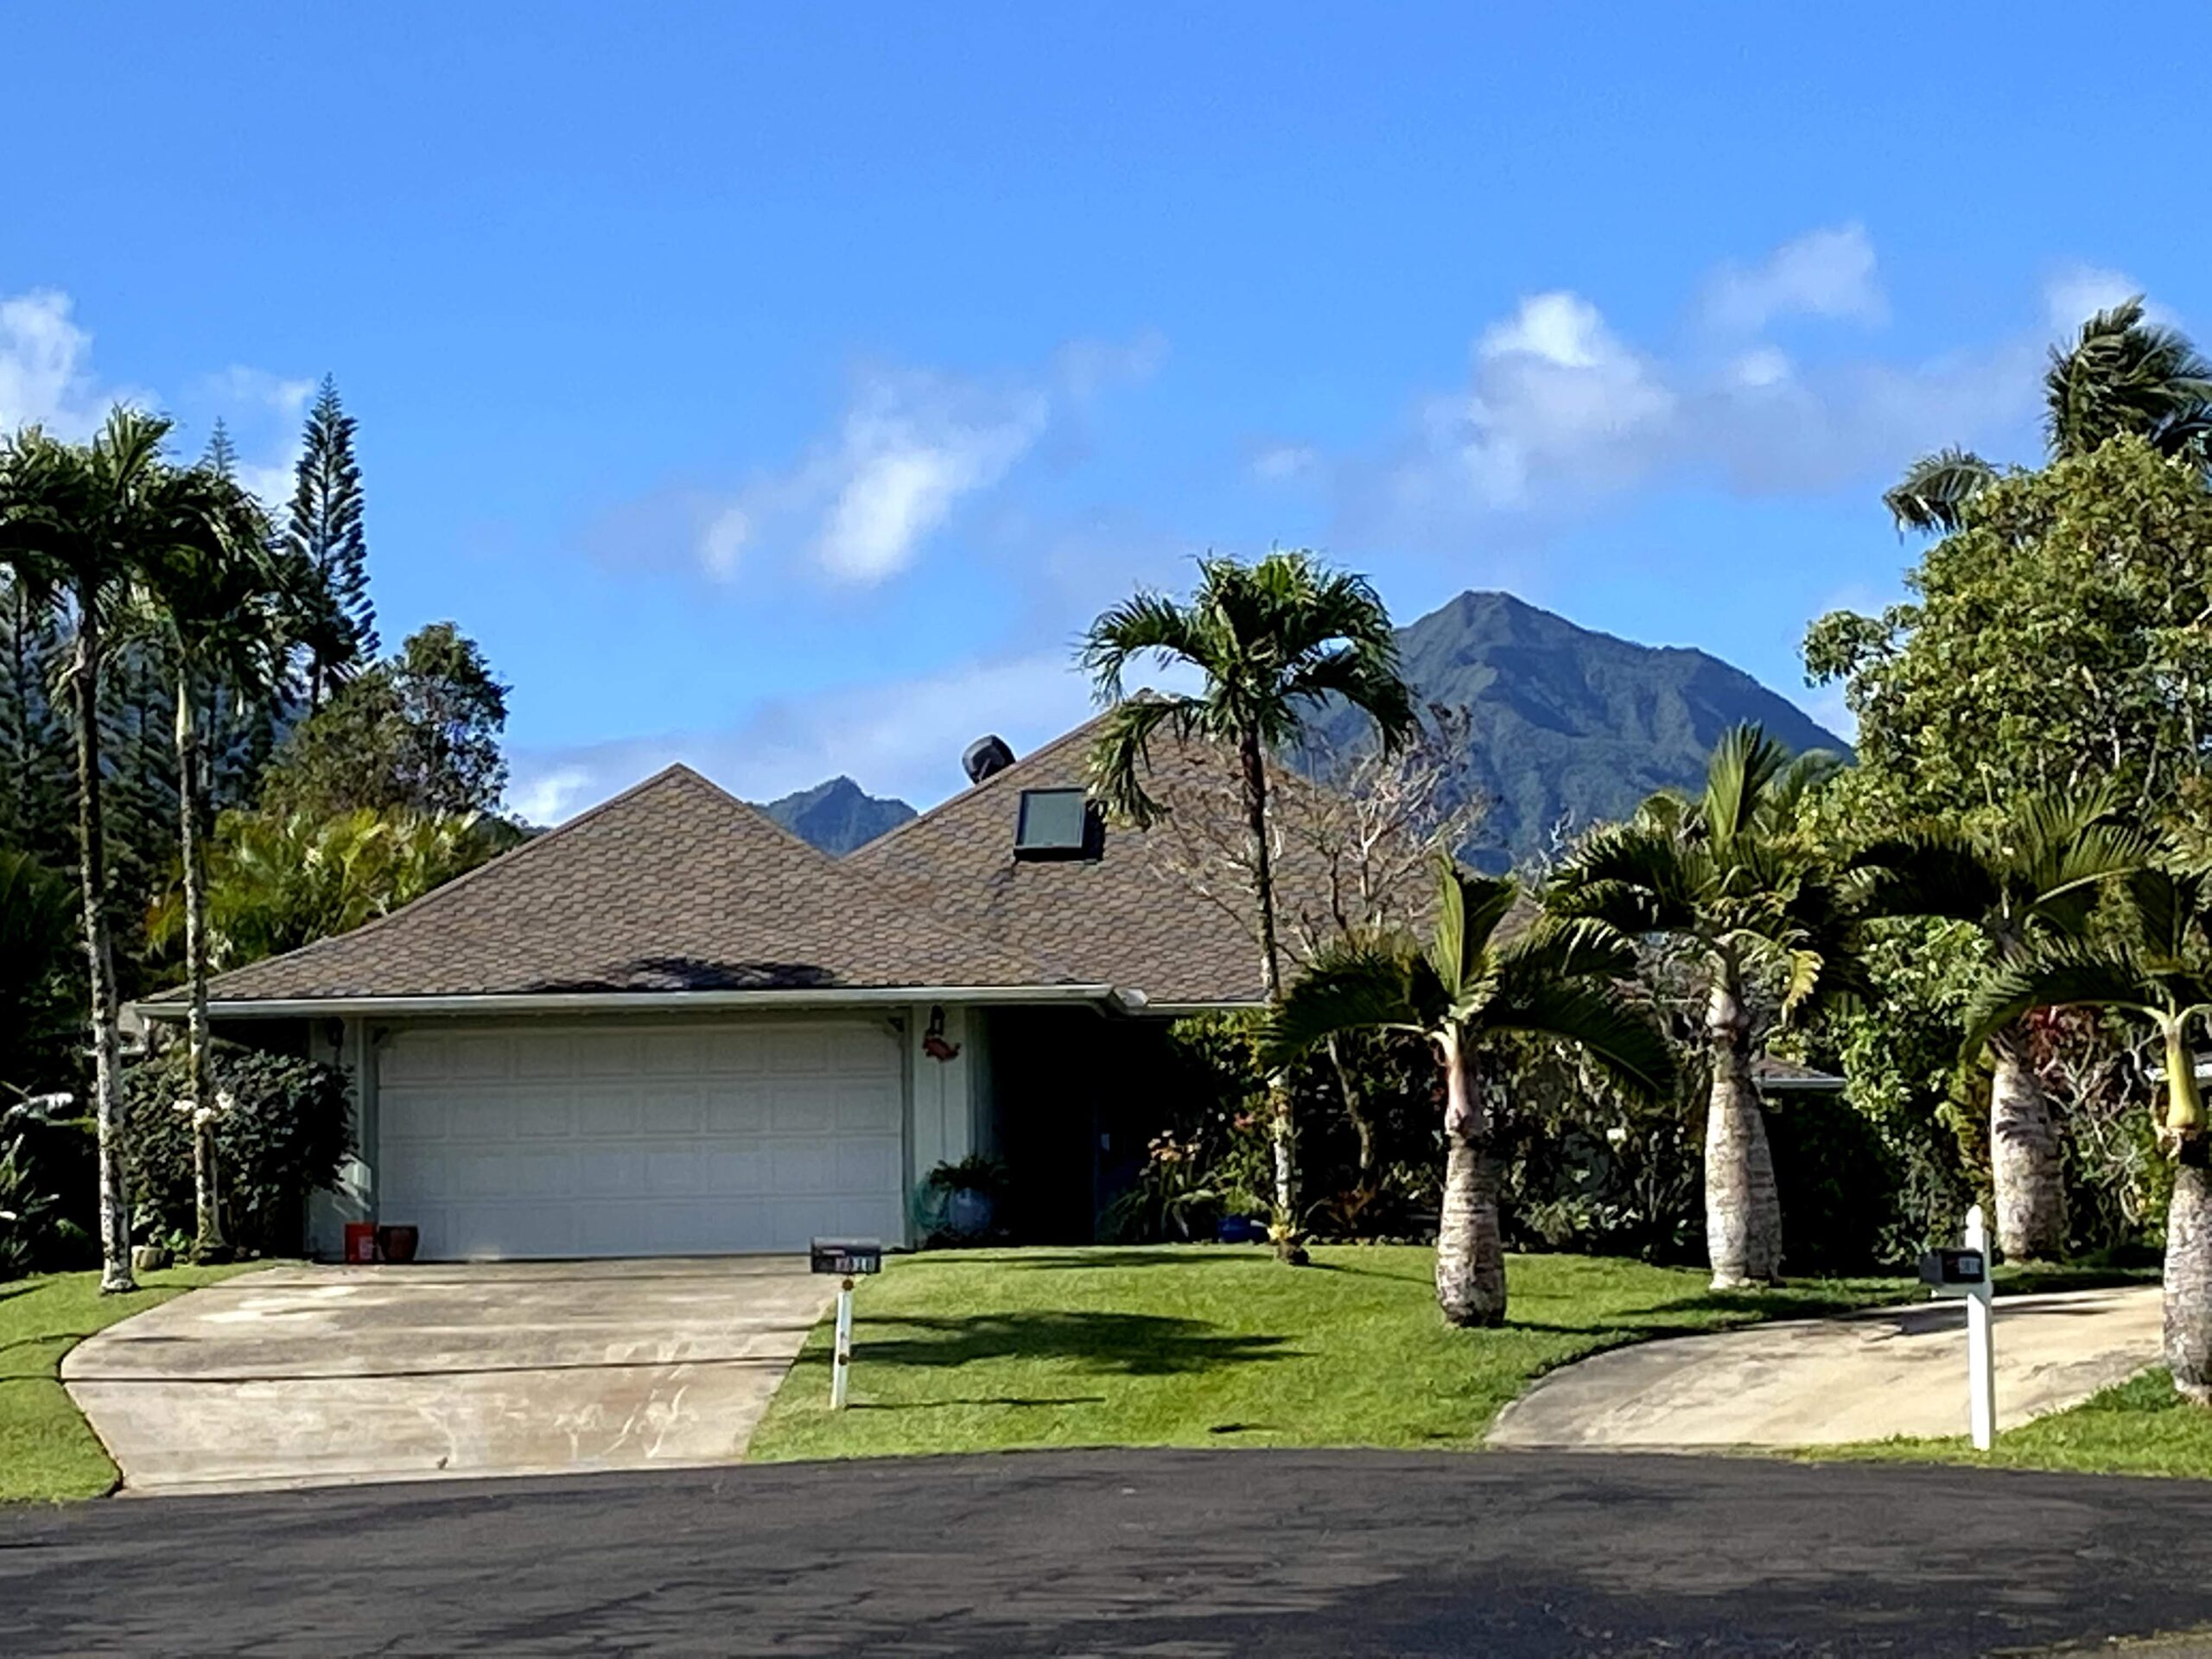 Front view of our Kauai Vacation rental home